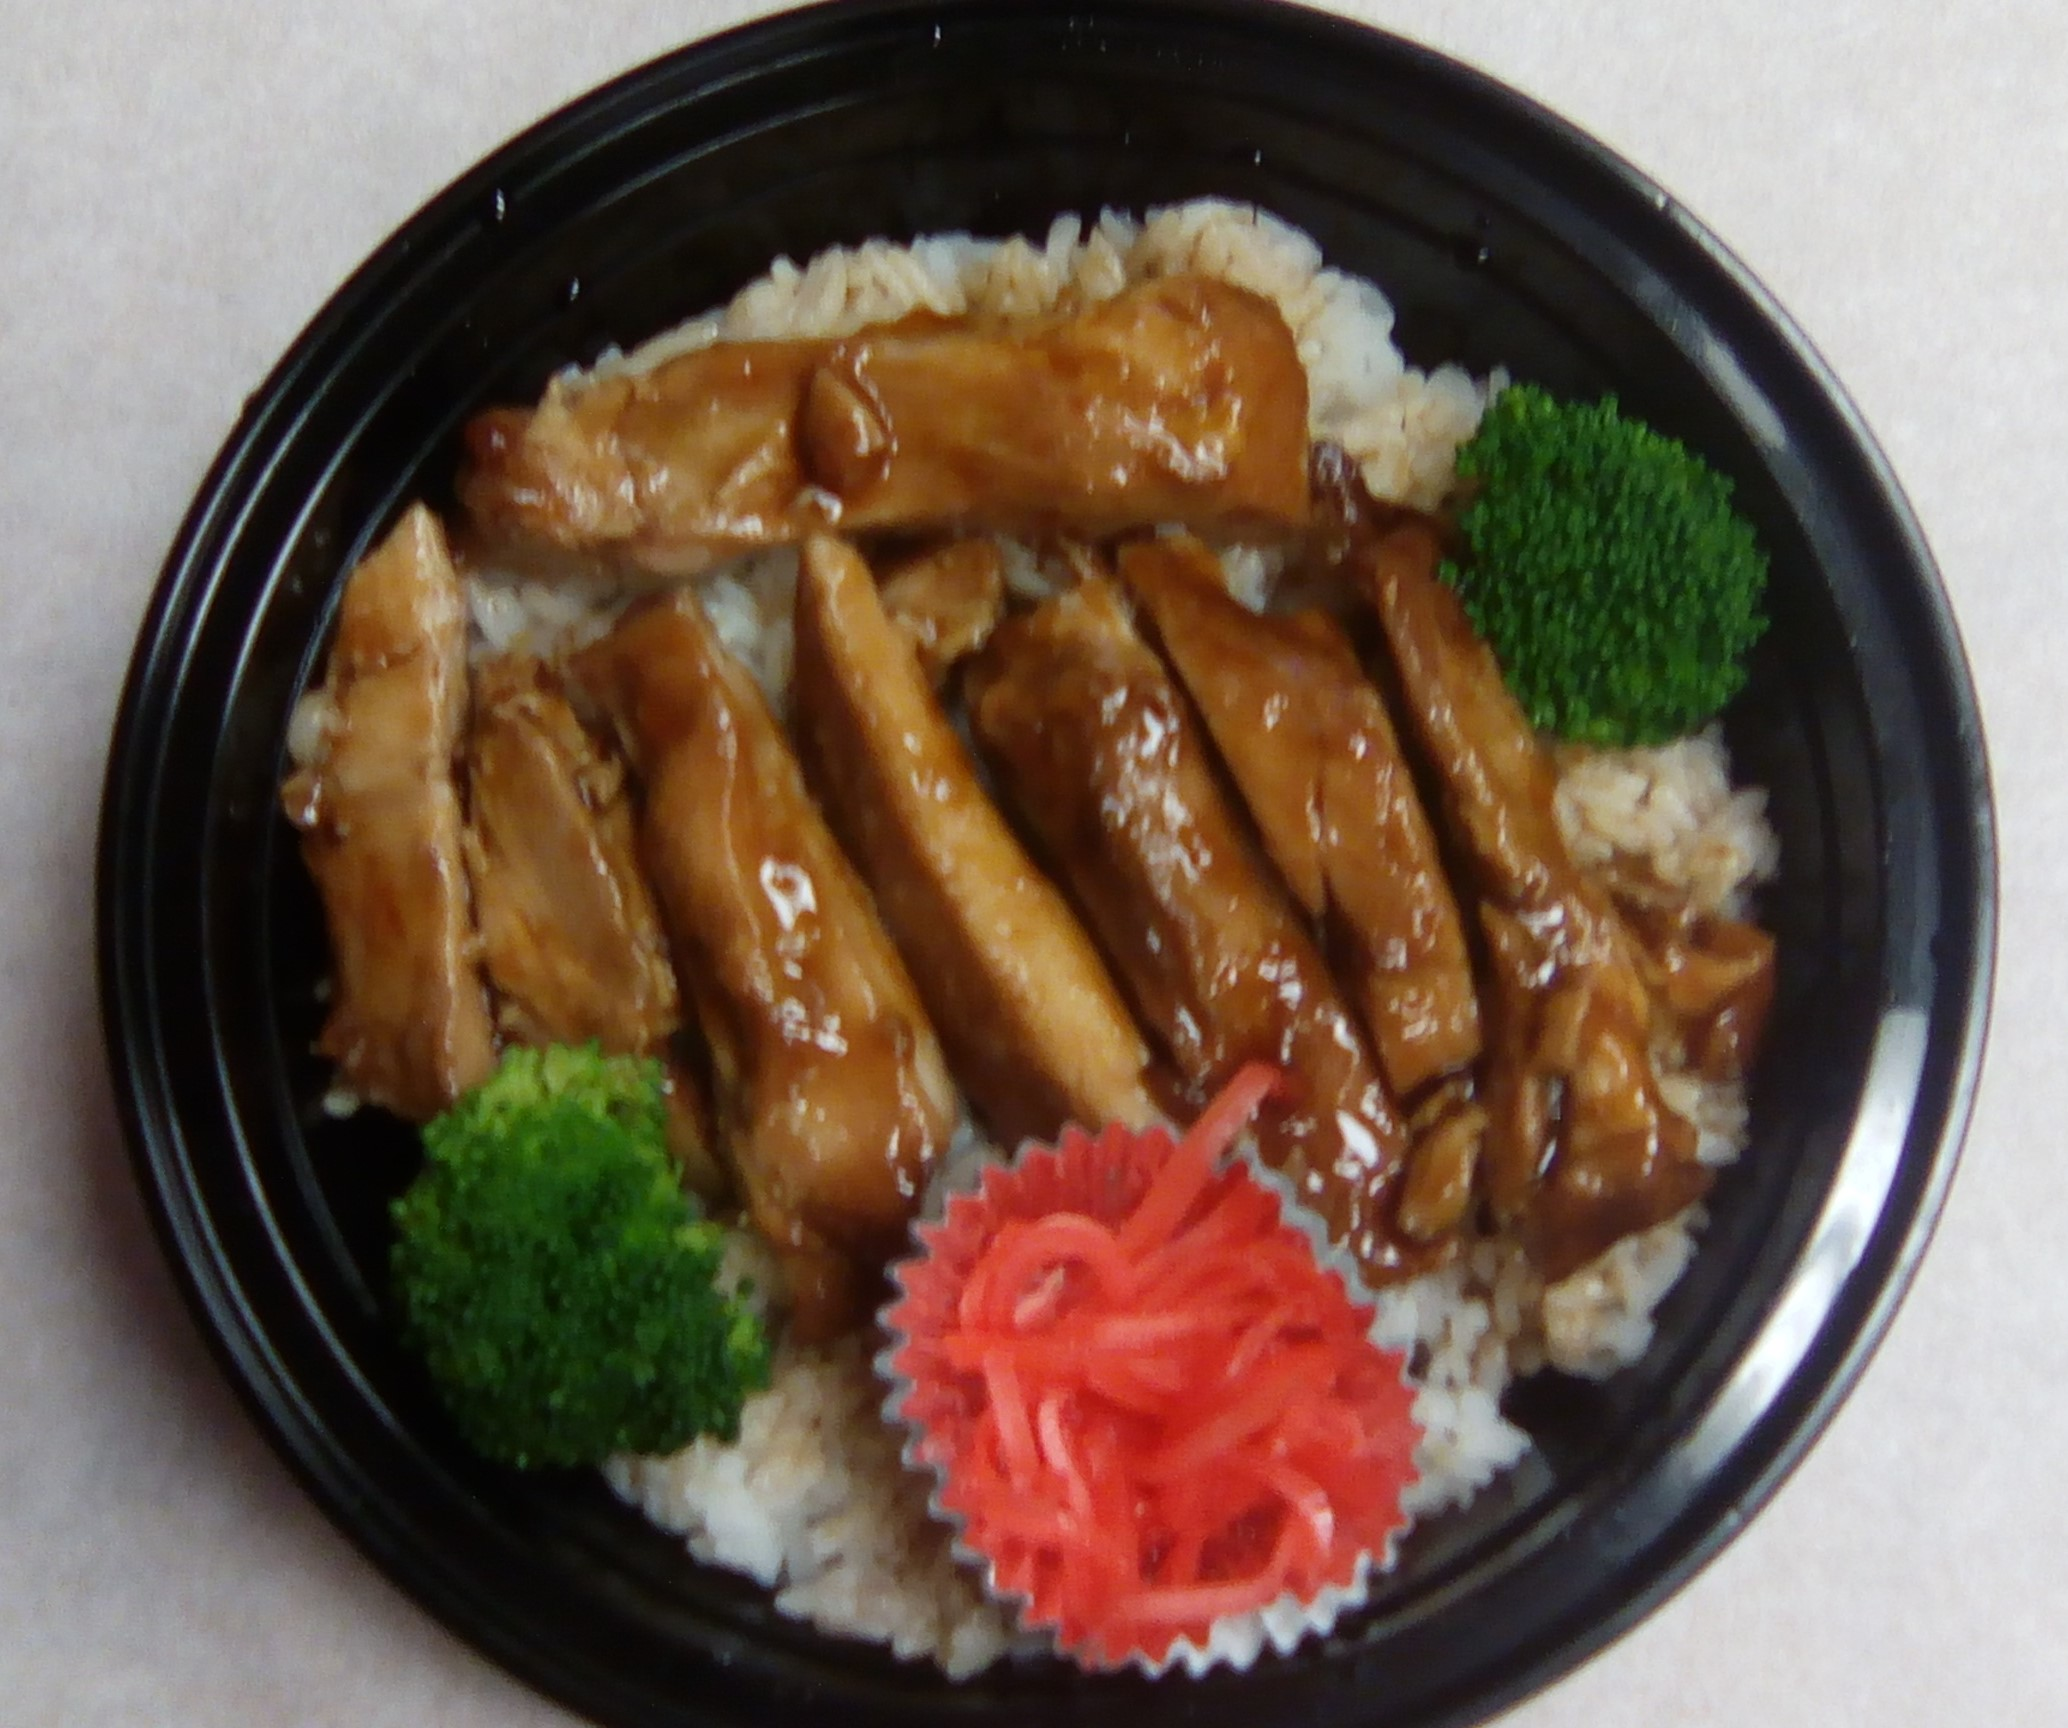 Tuesday,Aug 18 DONBURI